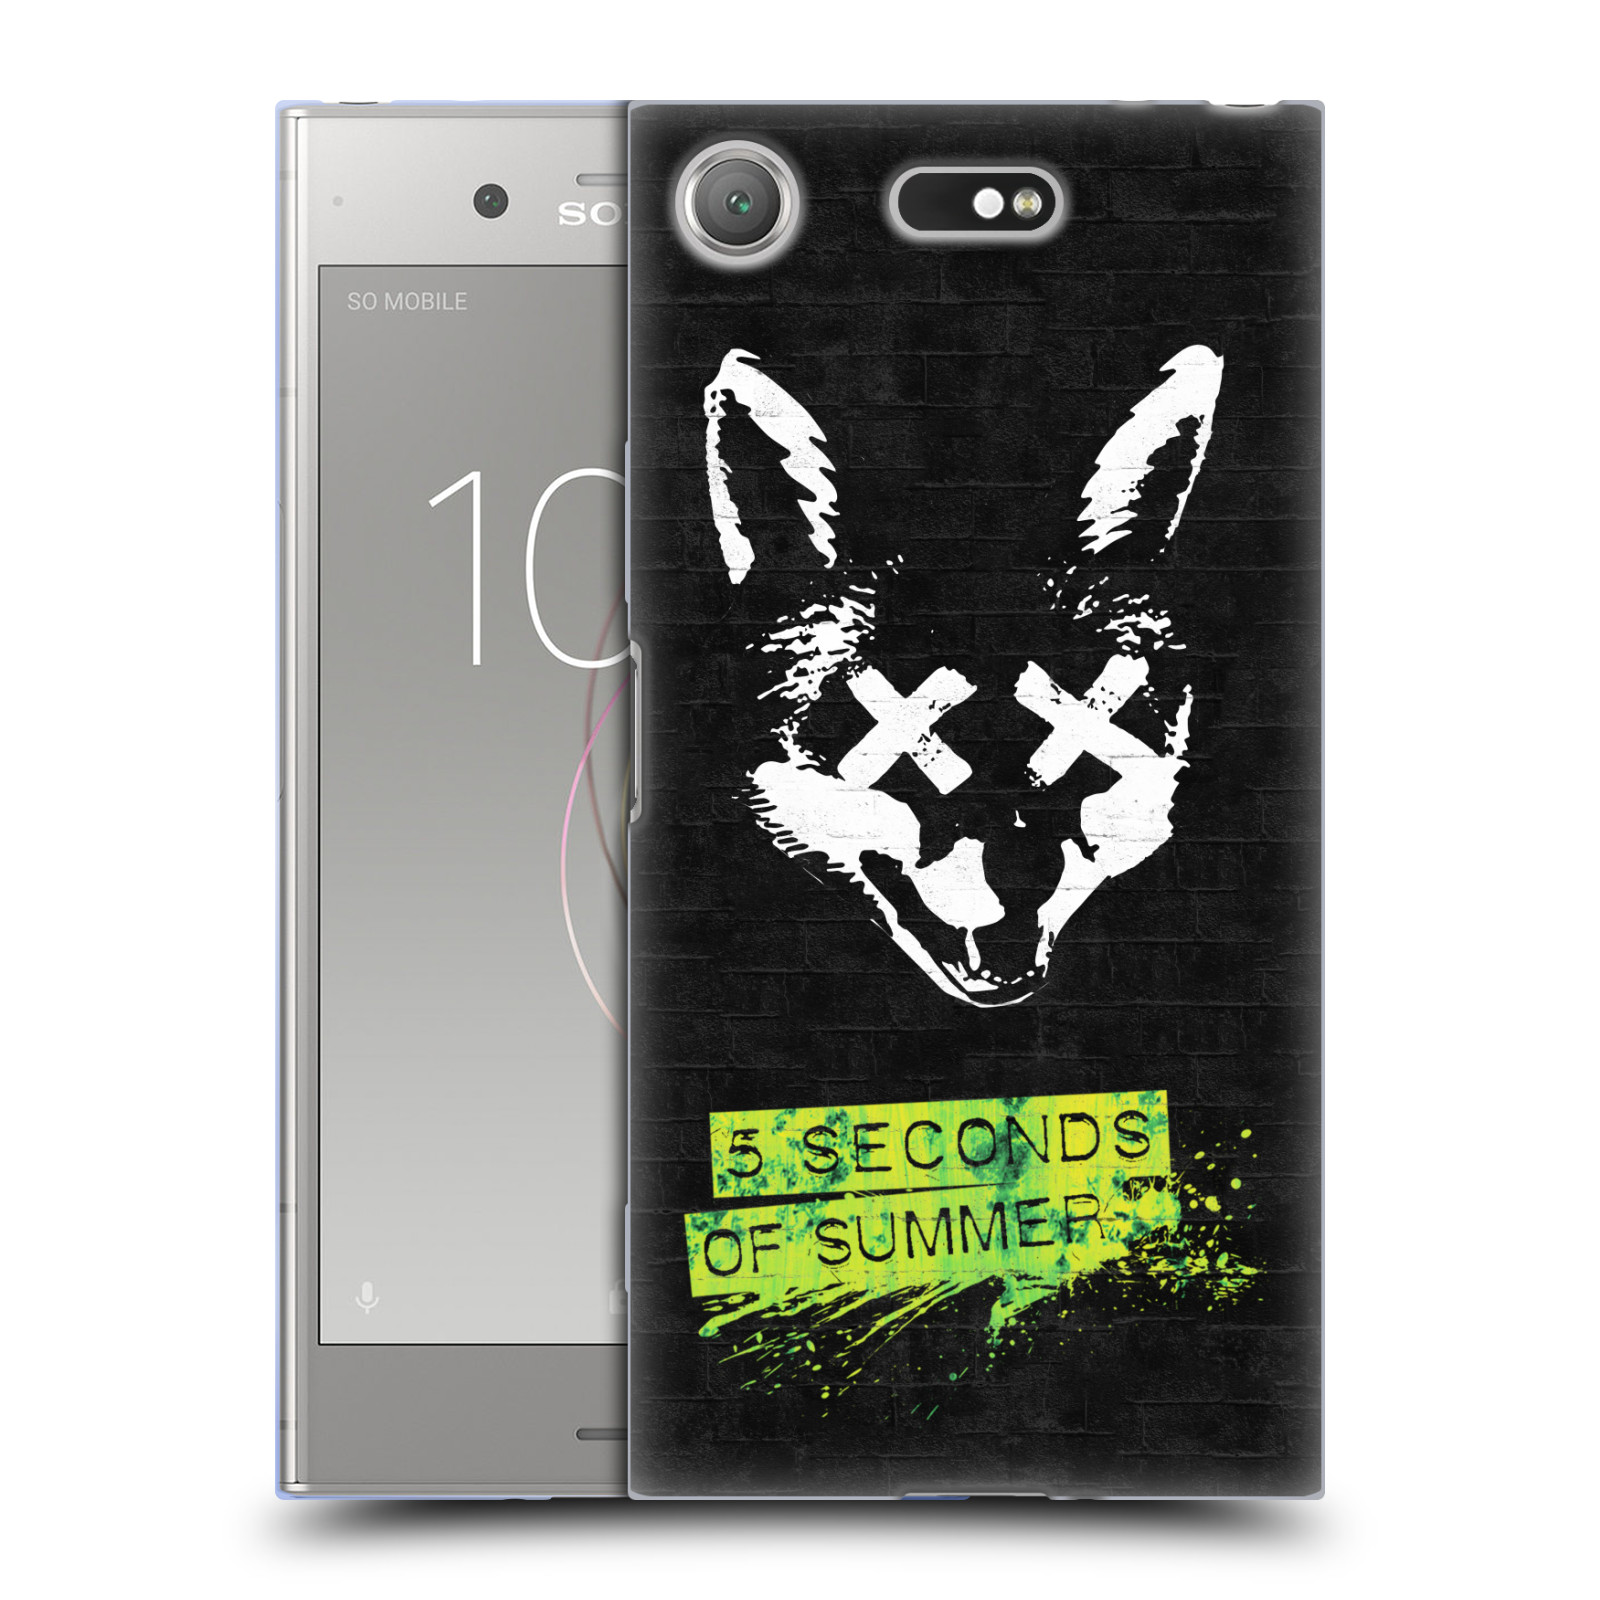 Silikonové pouzdro na mobil Sony Xperia XZ1 Compact - Head Case - 5 Seconds of Summer - Fox